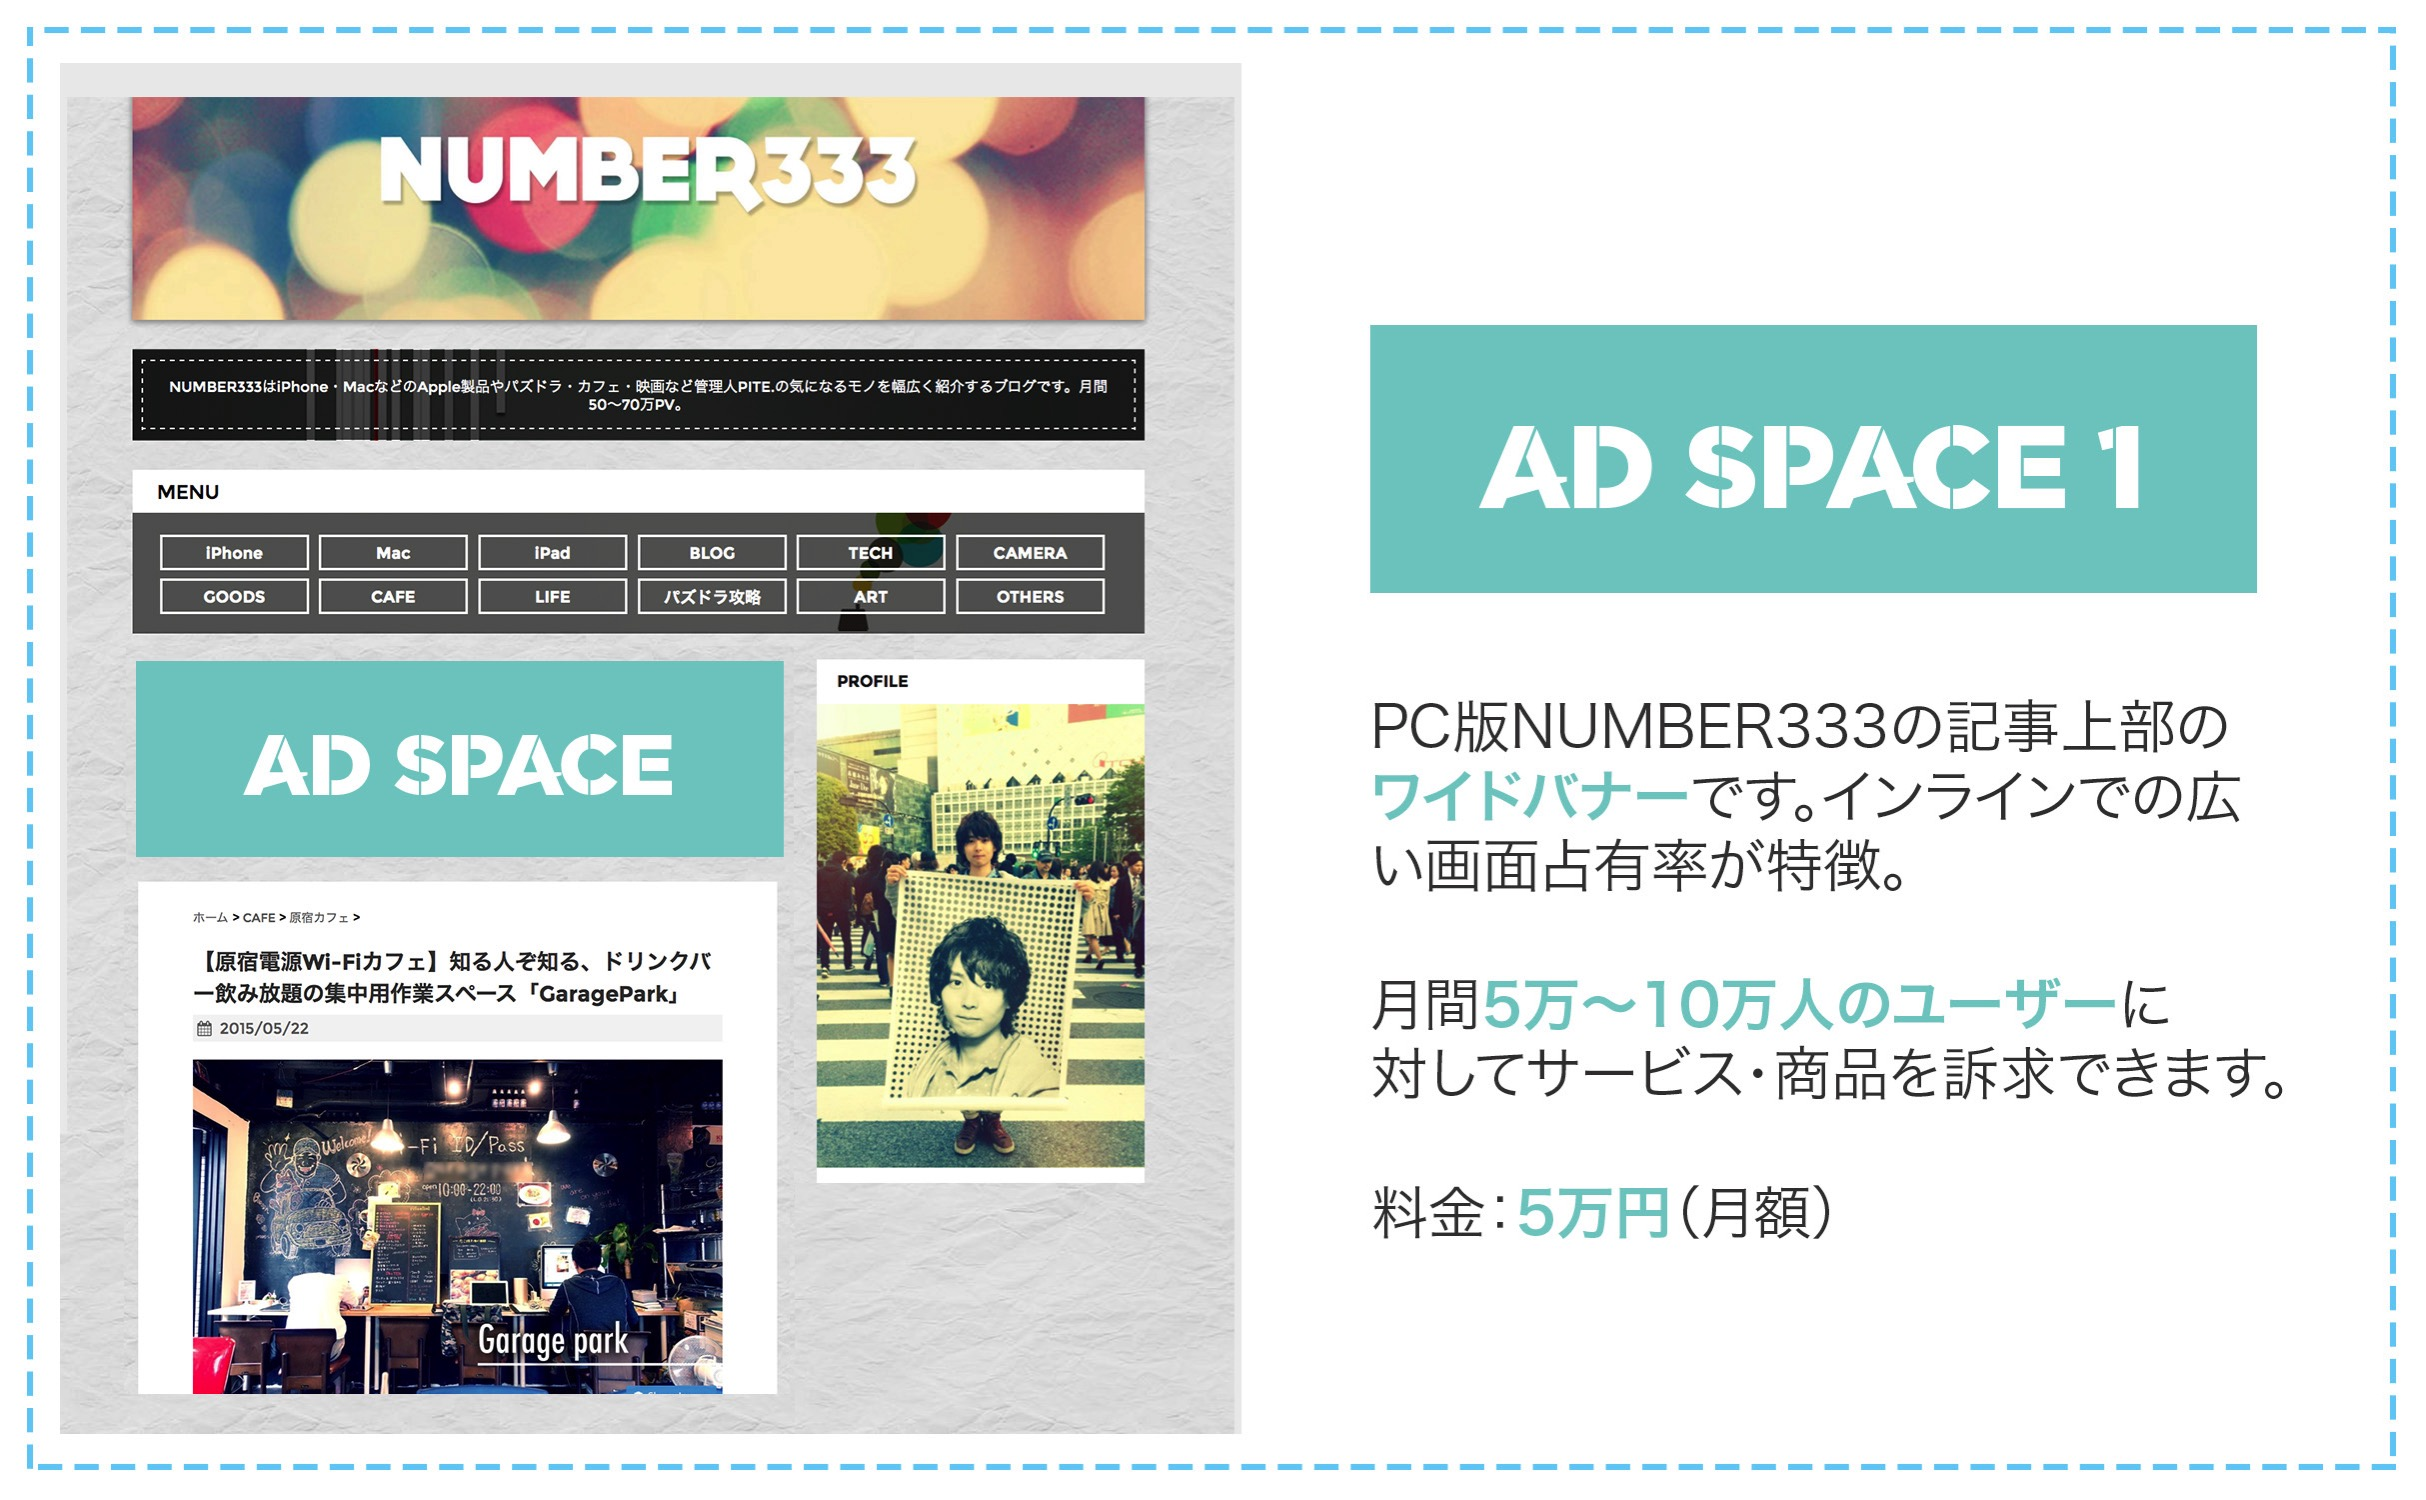 Adspace1